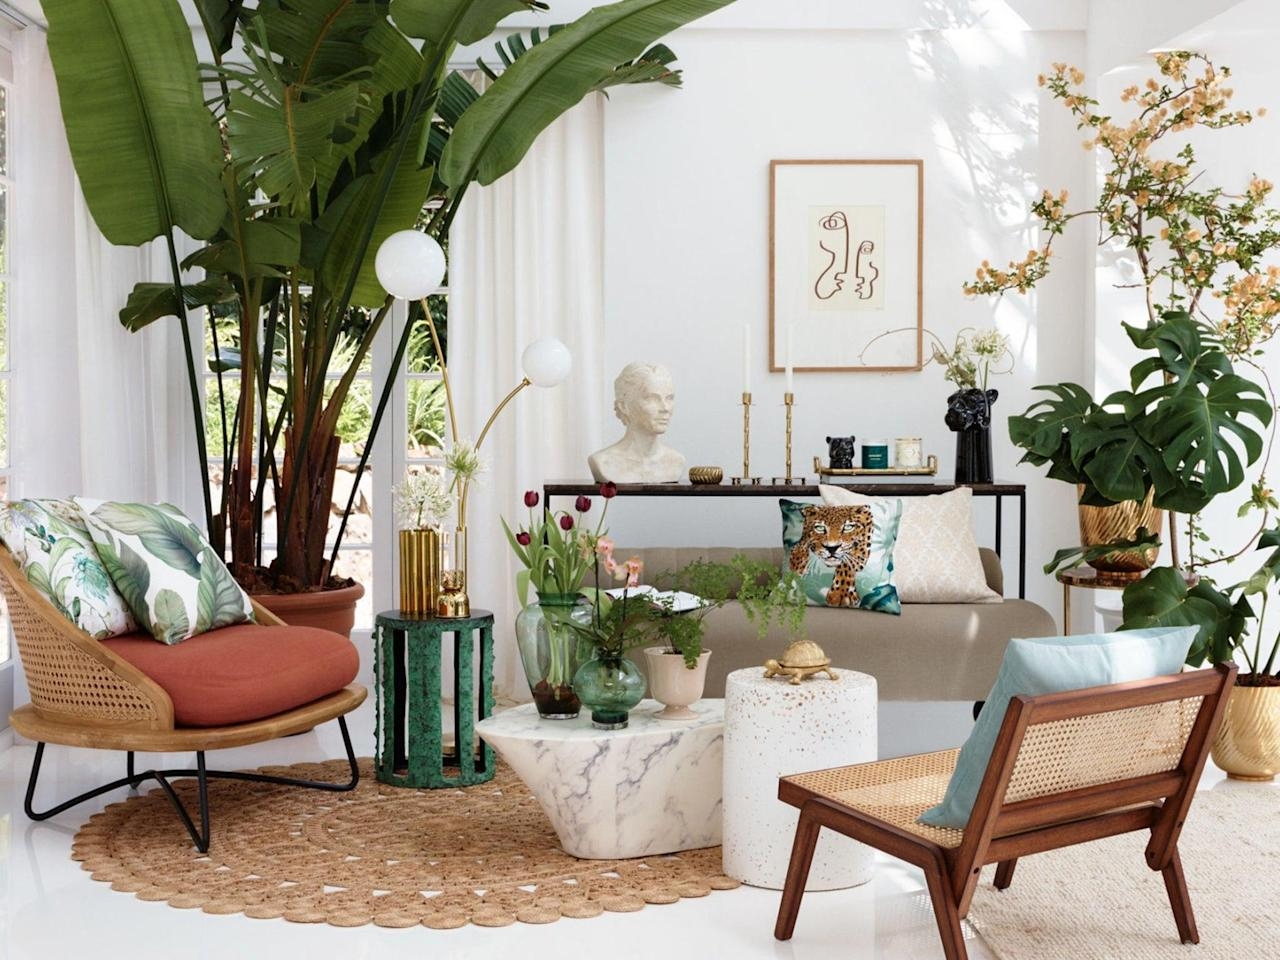 Best furniture brands that will turn your home into interior goals, from Loaf to Habitat